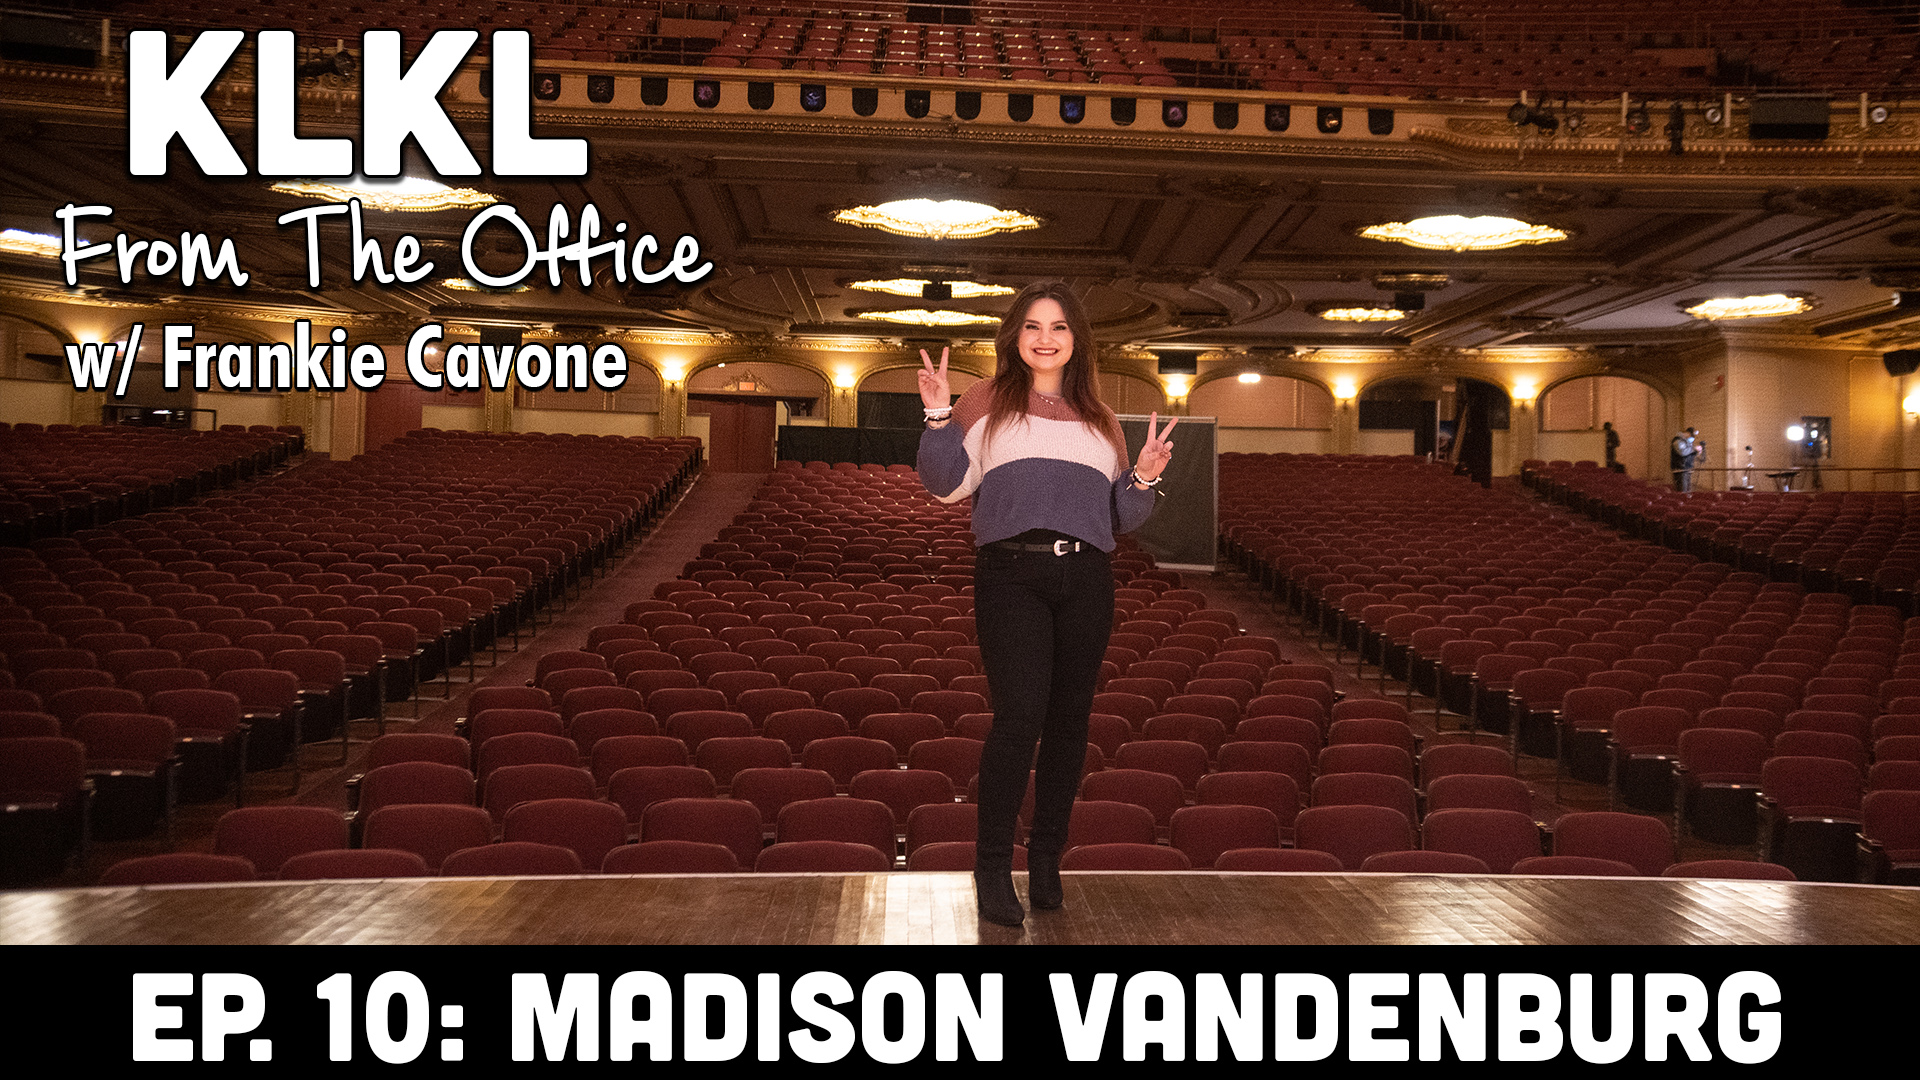 Madison VanDenburg | From The Office EP. 10 with Frankie Cavone